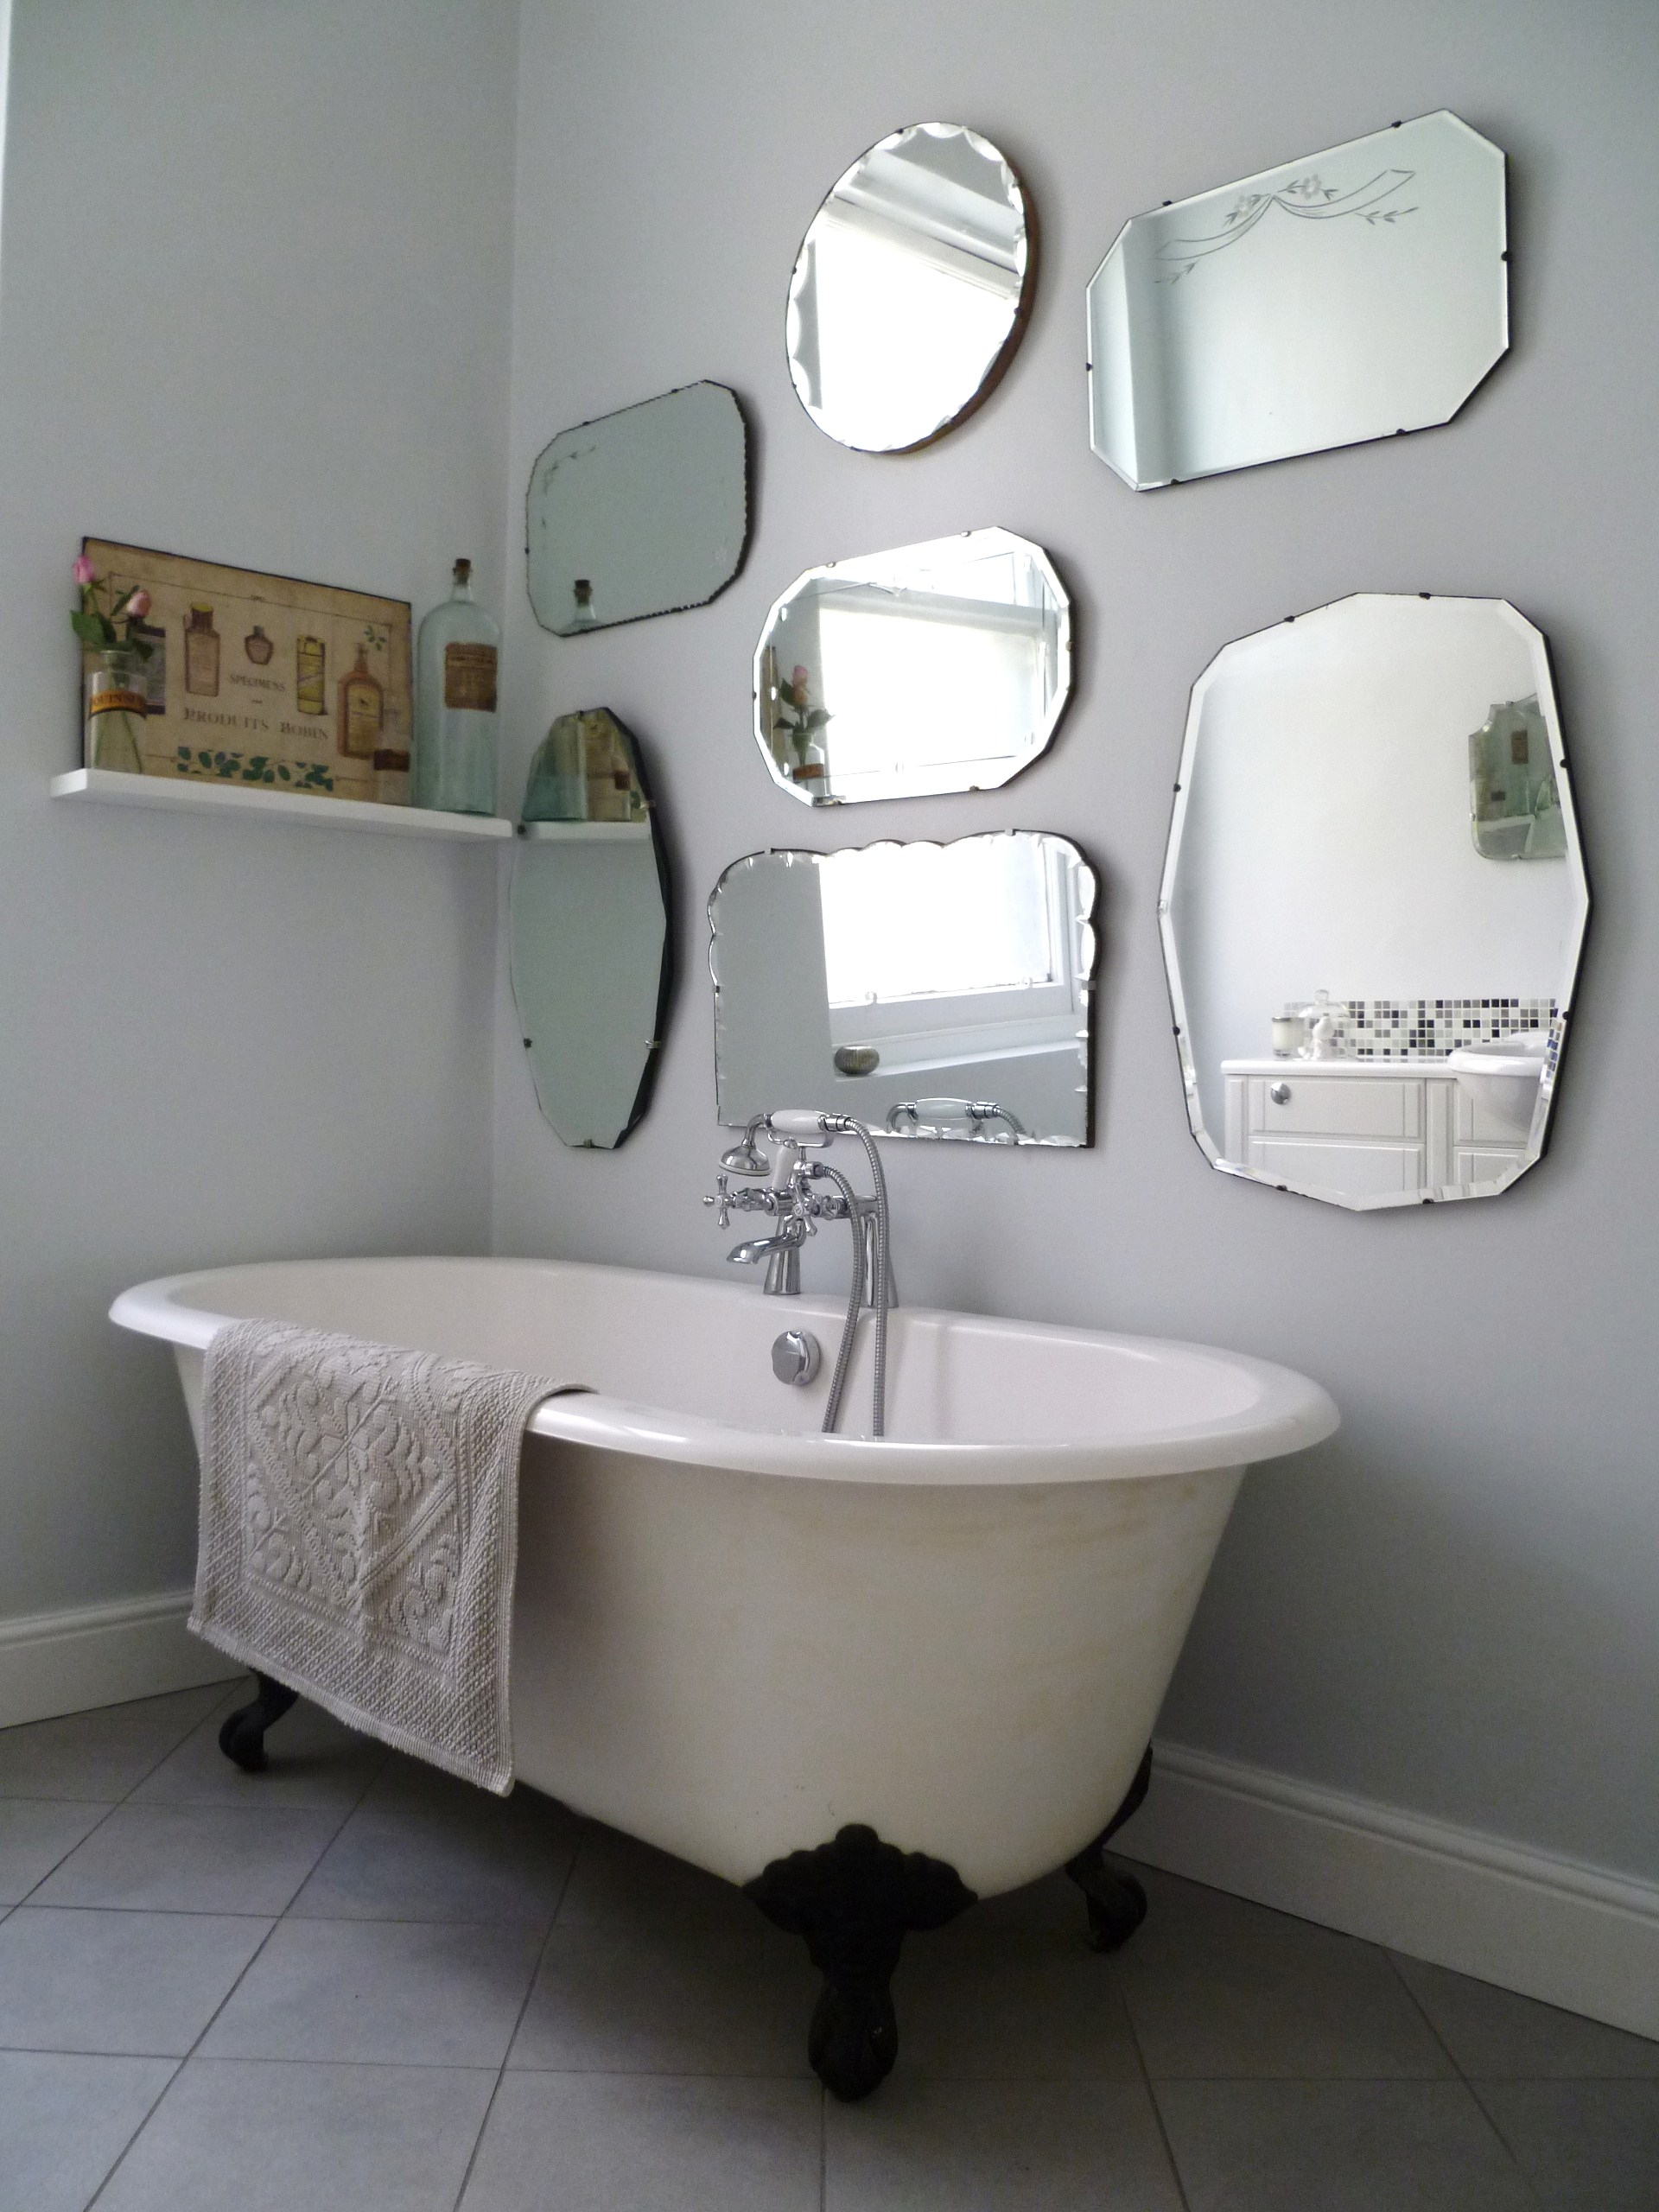 How To Hang A Display Of Vintage Mirrors Mirror Walls Grey And Intended For Antique Frameless Mirrors (Image 11 of 15)